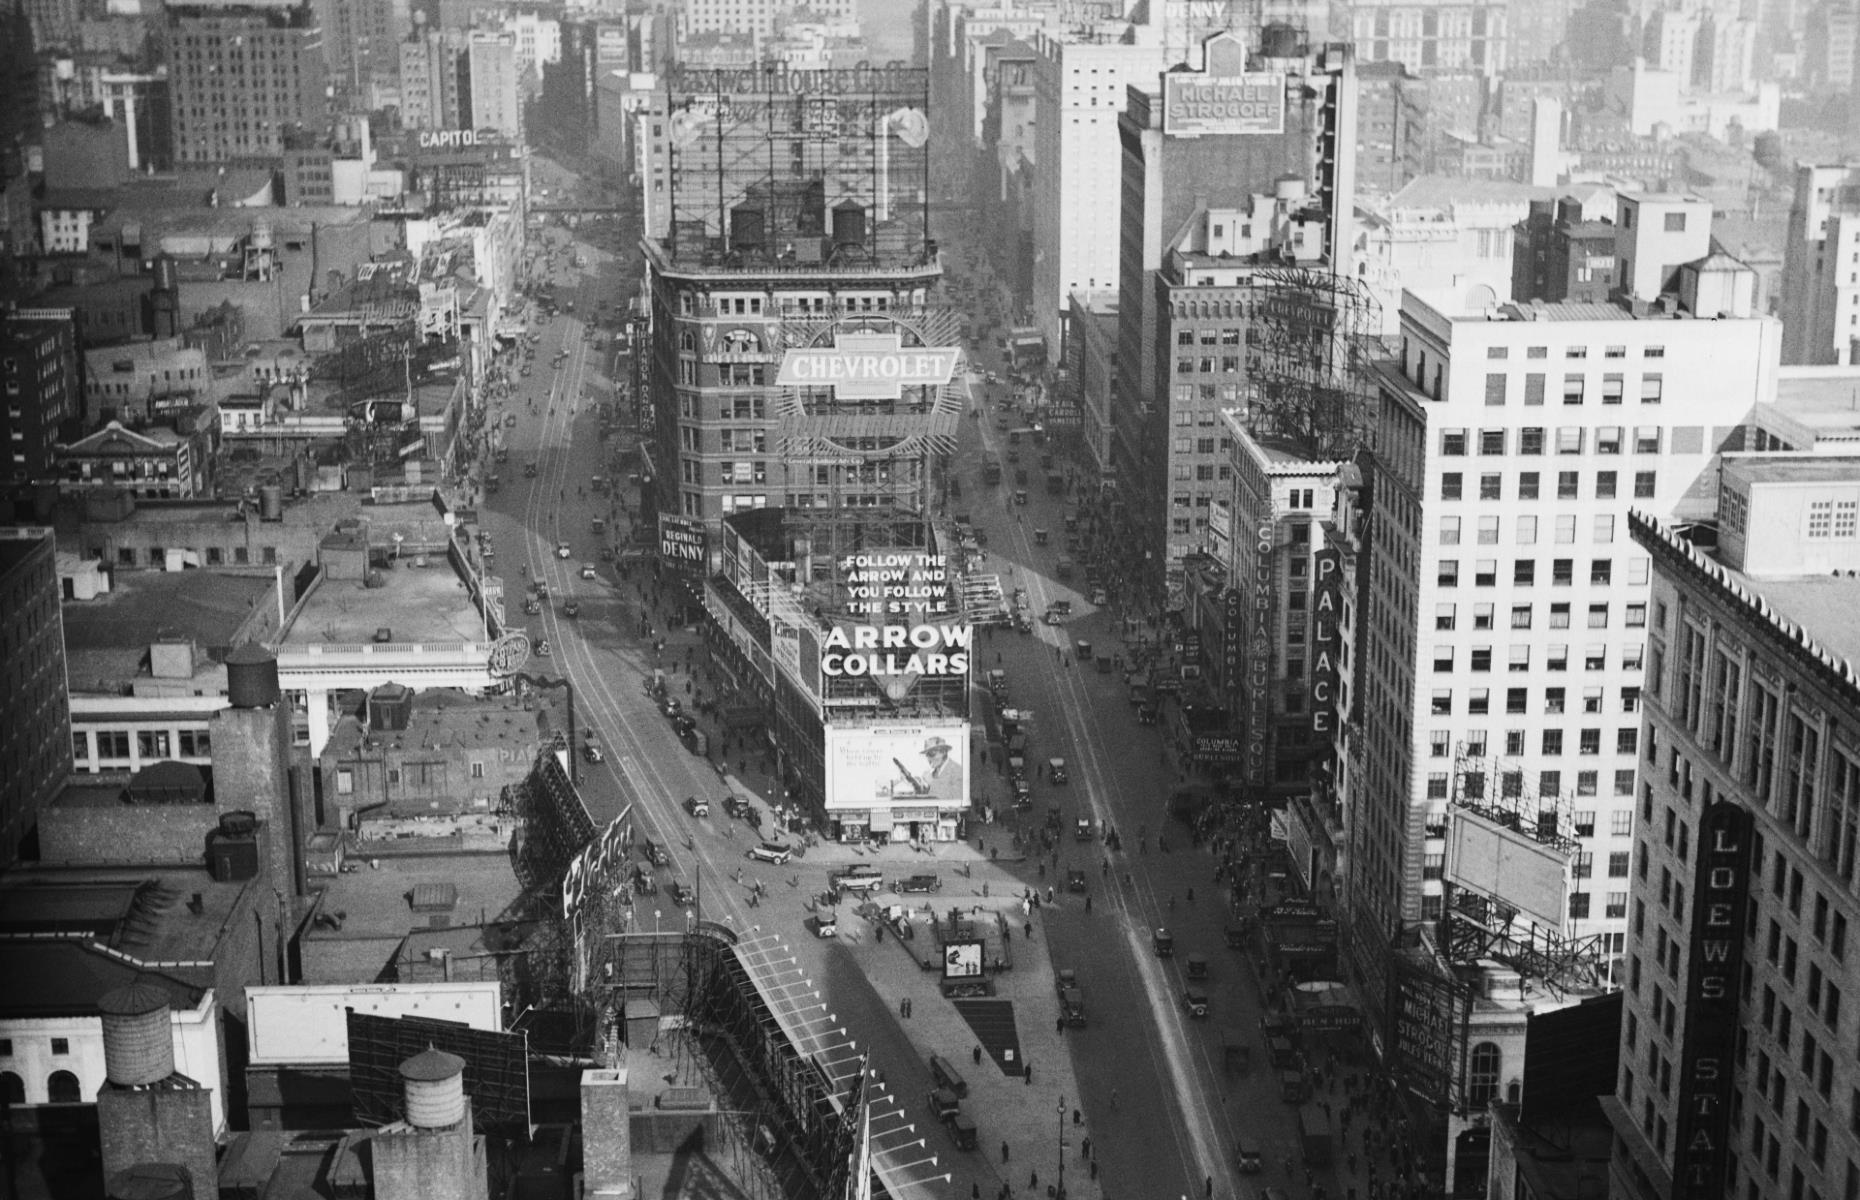 Slide 25 of 51: The Times Square of the 1920s (pictured here) is a far cry from the flashing lights and billboards of the Times Square we know today. Originally known as Longacre Square, in the 1880s it comprised a large open space surrounded by apartments, but shortly after that electricity arrived inthe area,and streetlights and theatersigns sprung up. It was renamed to Times Square in April 1904, after the New York Times, which was set to relocate its headquarters there in January 1905.